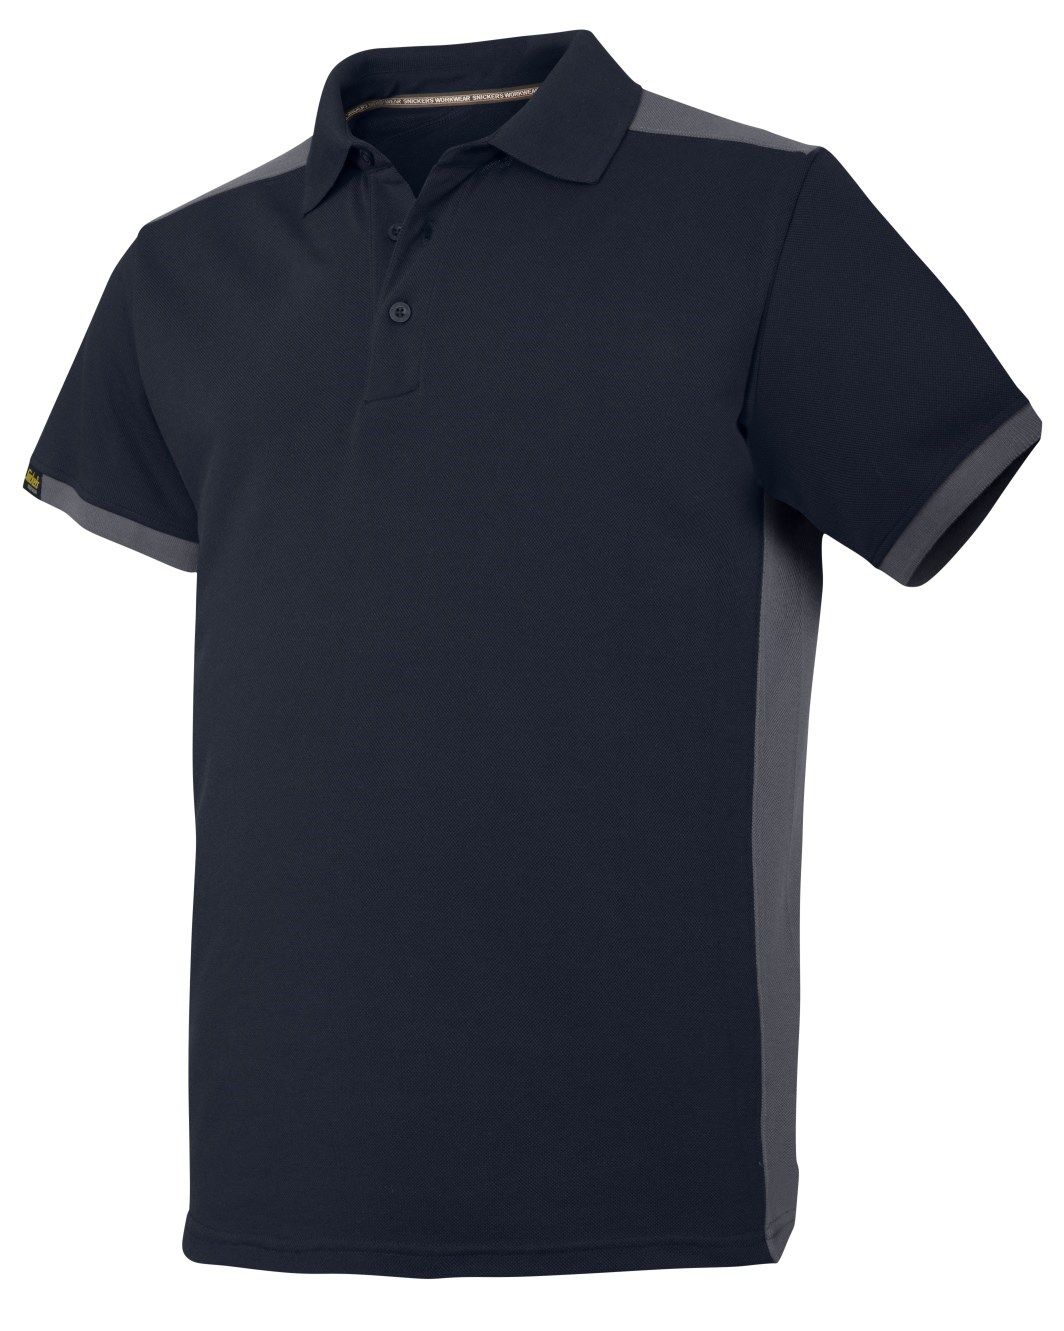 Snickers 2715 AllroundWork Polo Shirt Navy